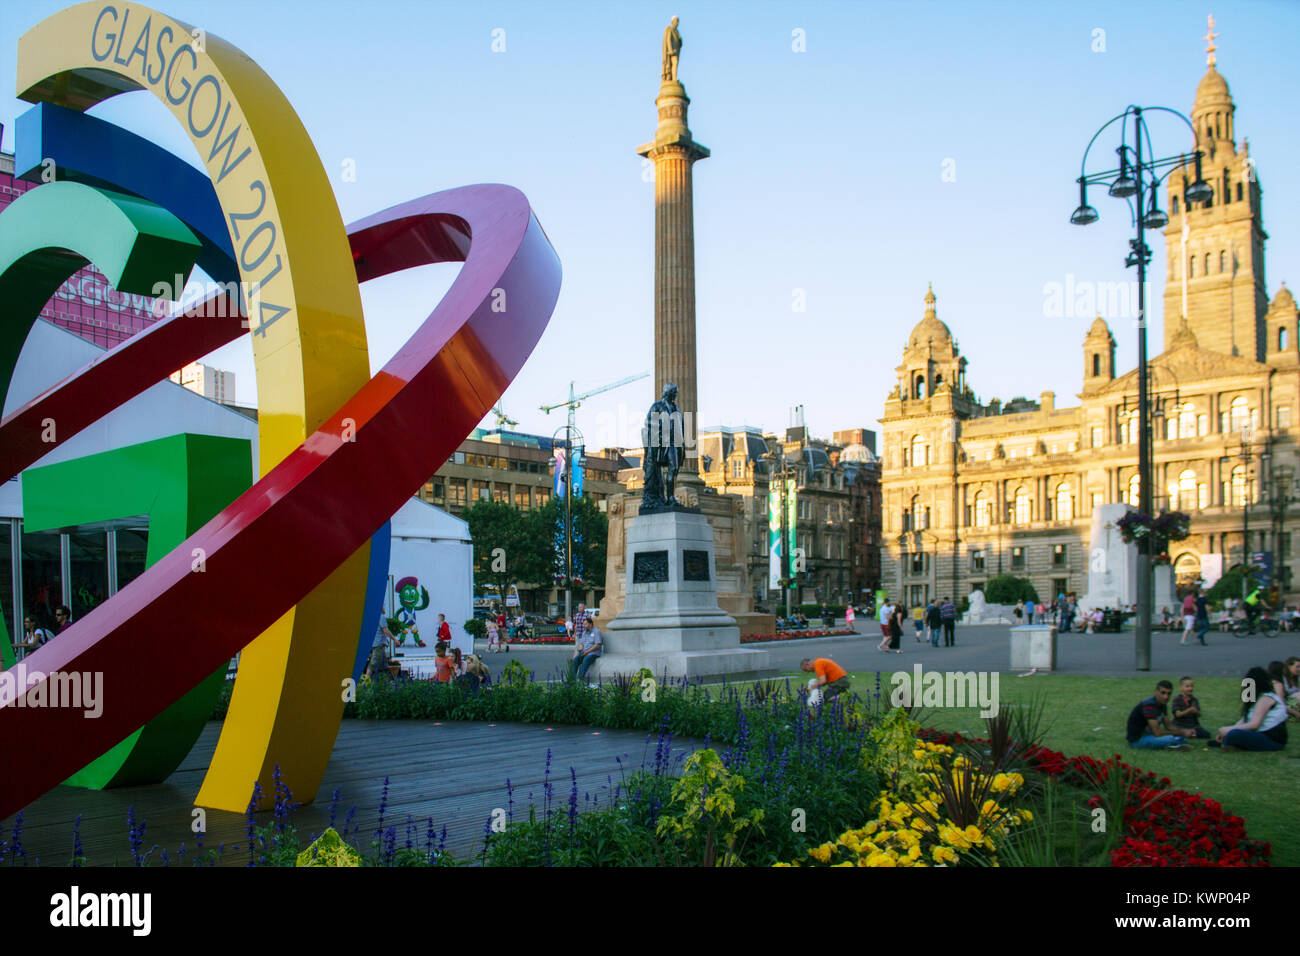 The Big G sculpture and City Chambers, during the XX Commonwealth Games, George Square, Glasgow, Scotland - Stock Image